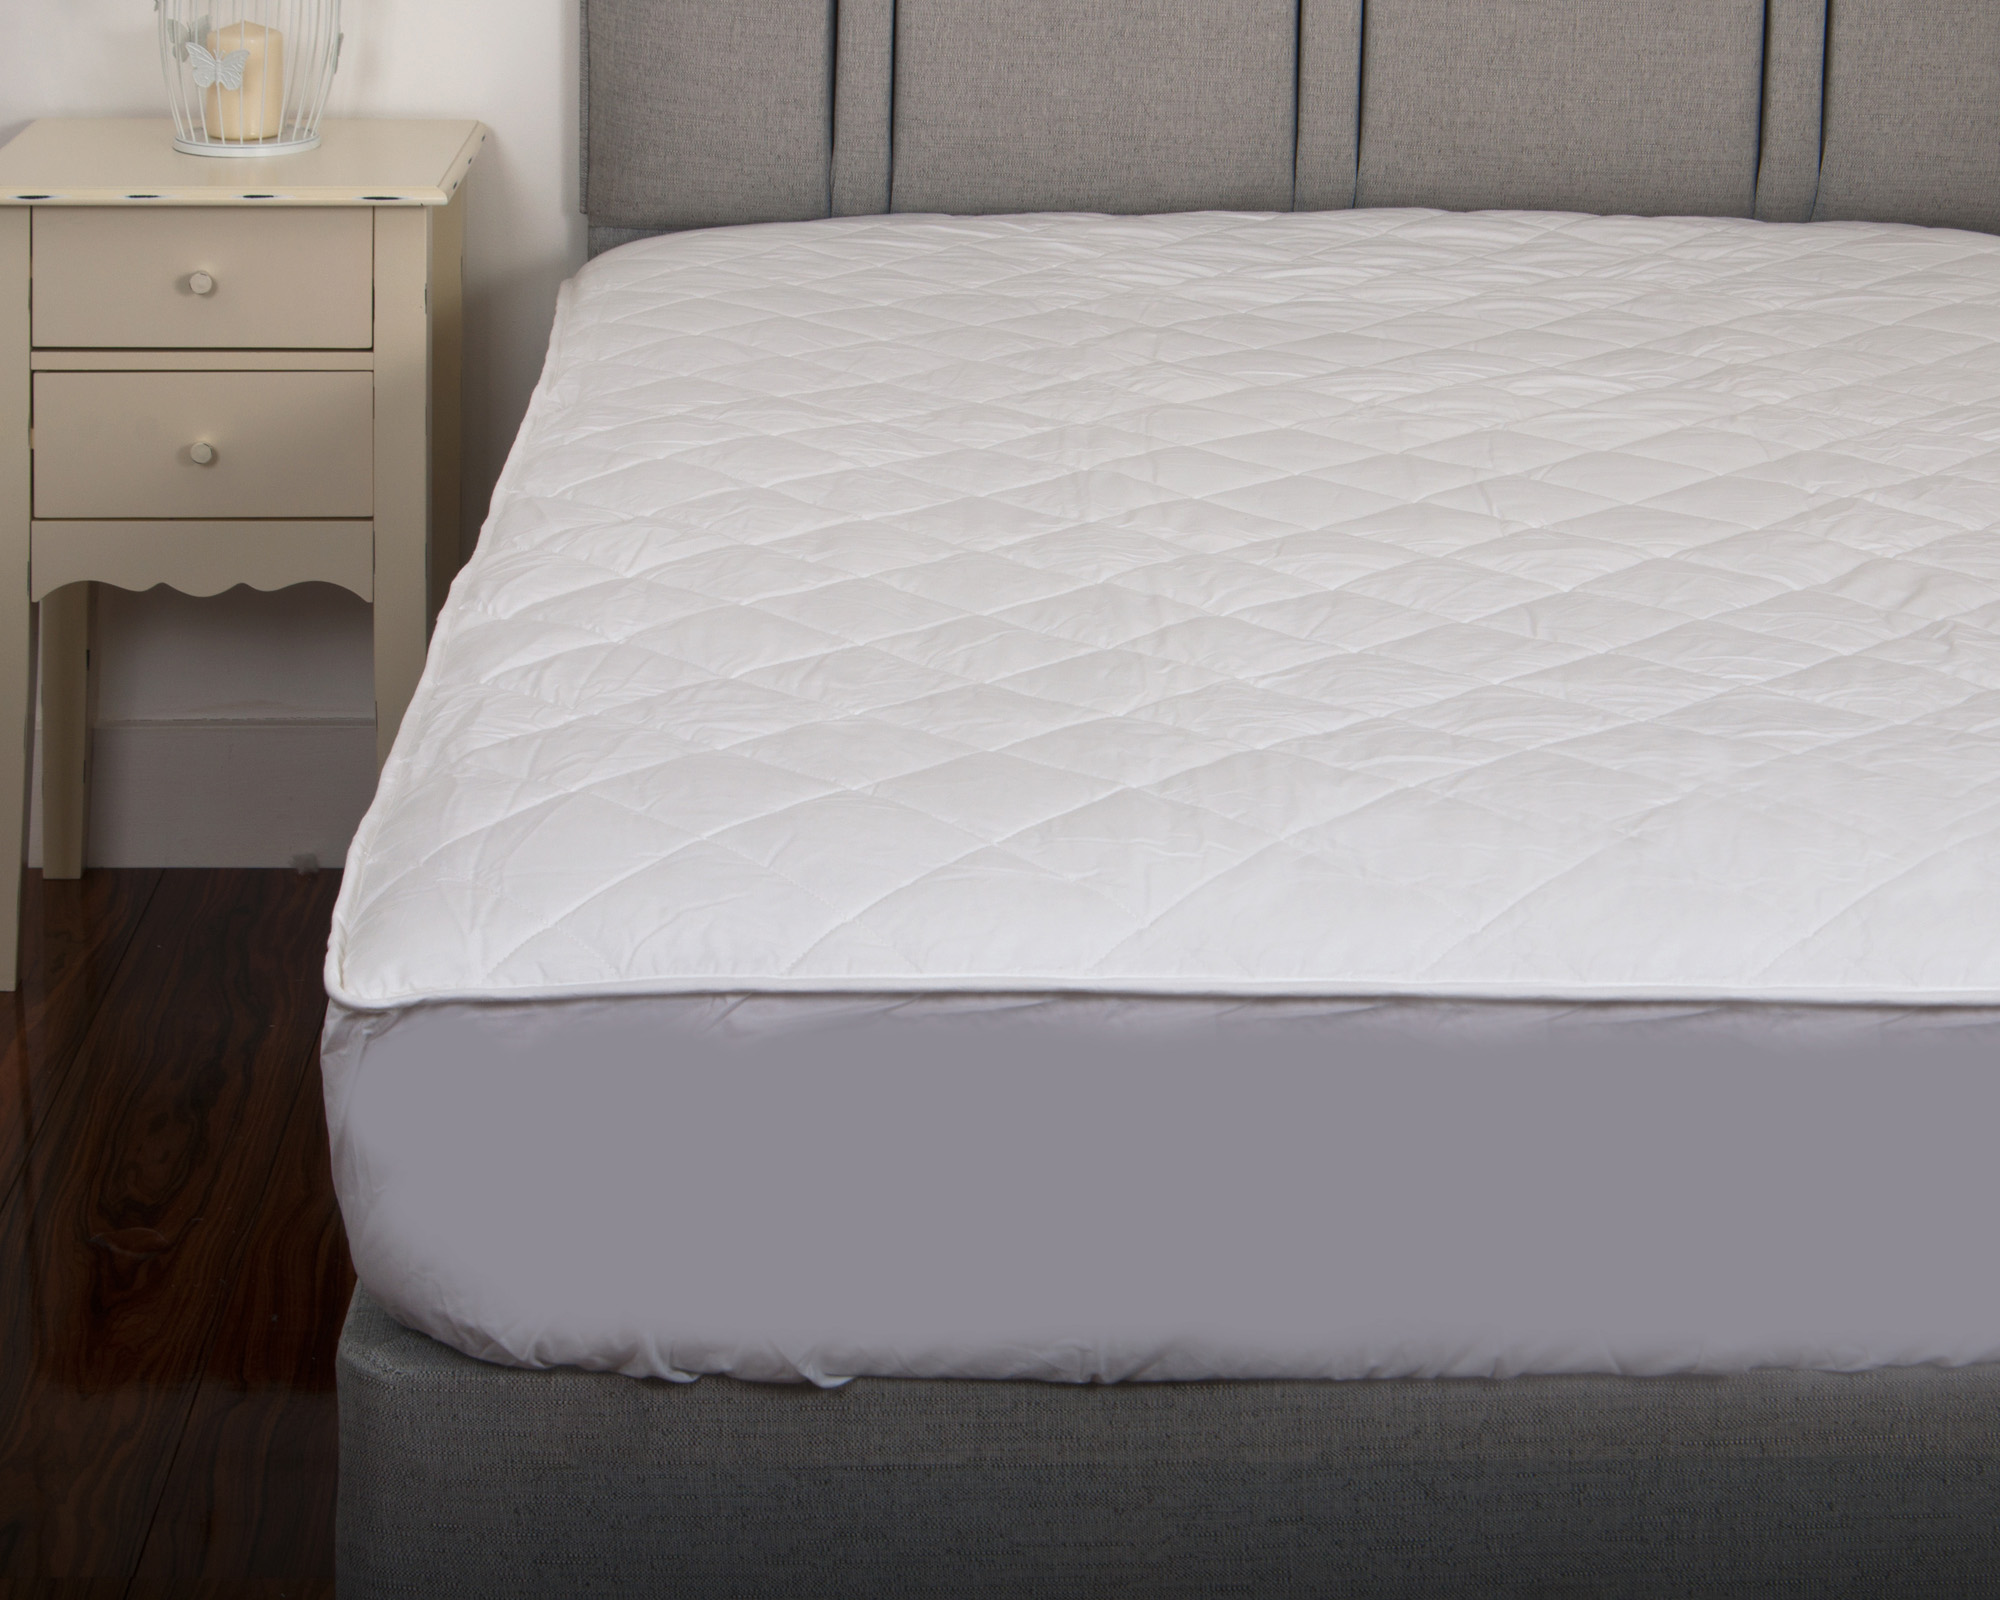 Luxury Deep Quilted 300TC 100% Cotton Percale Luxury Mattress ...